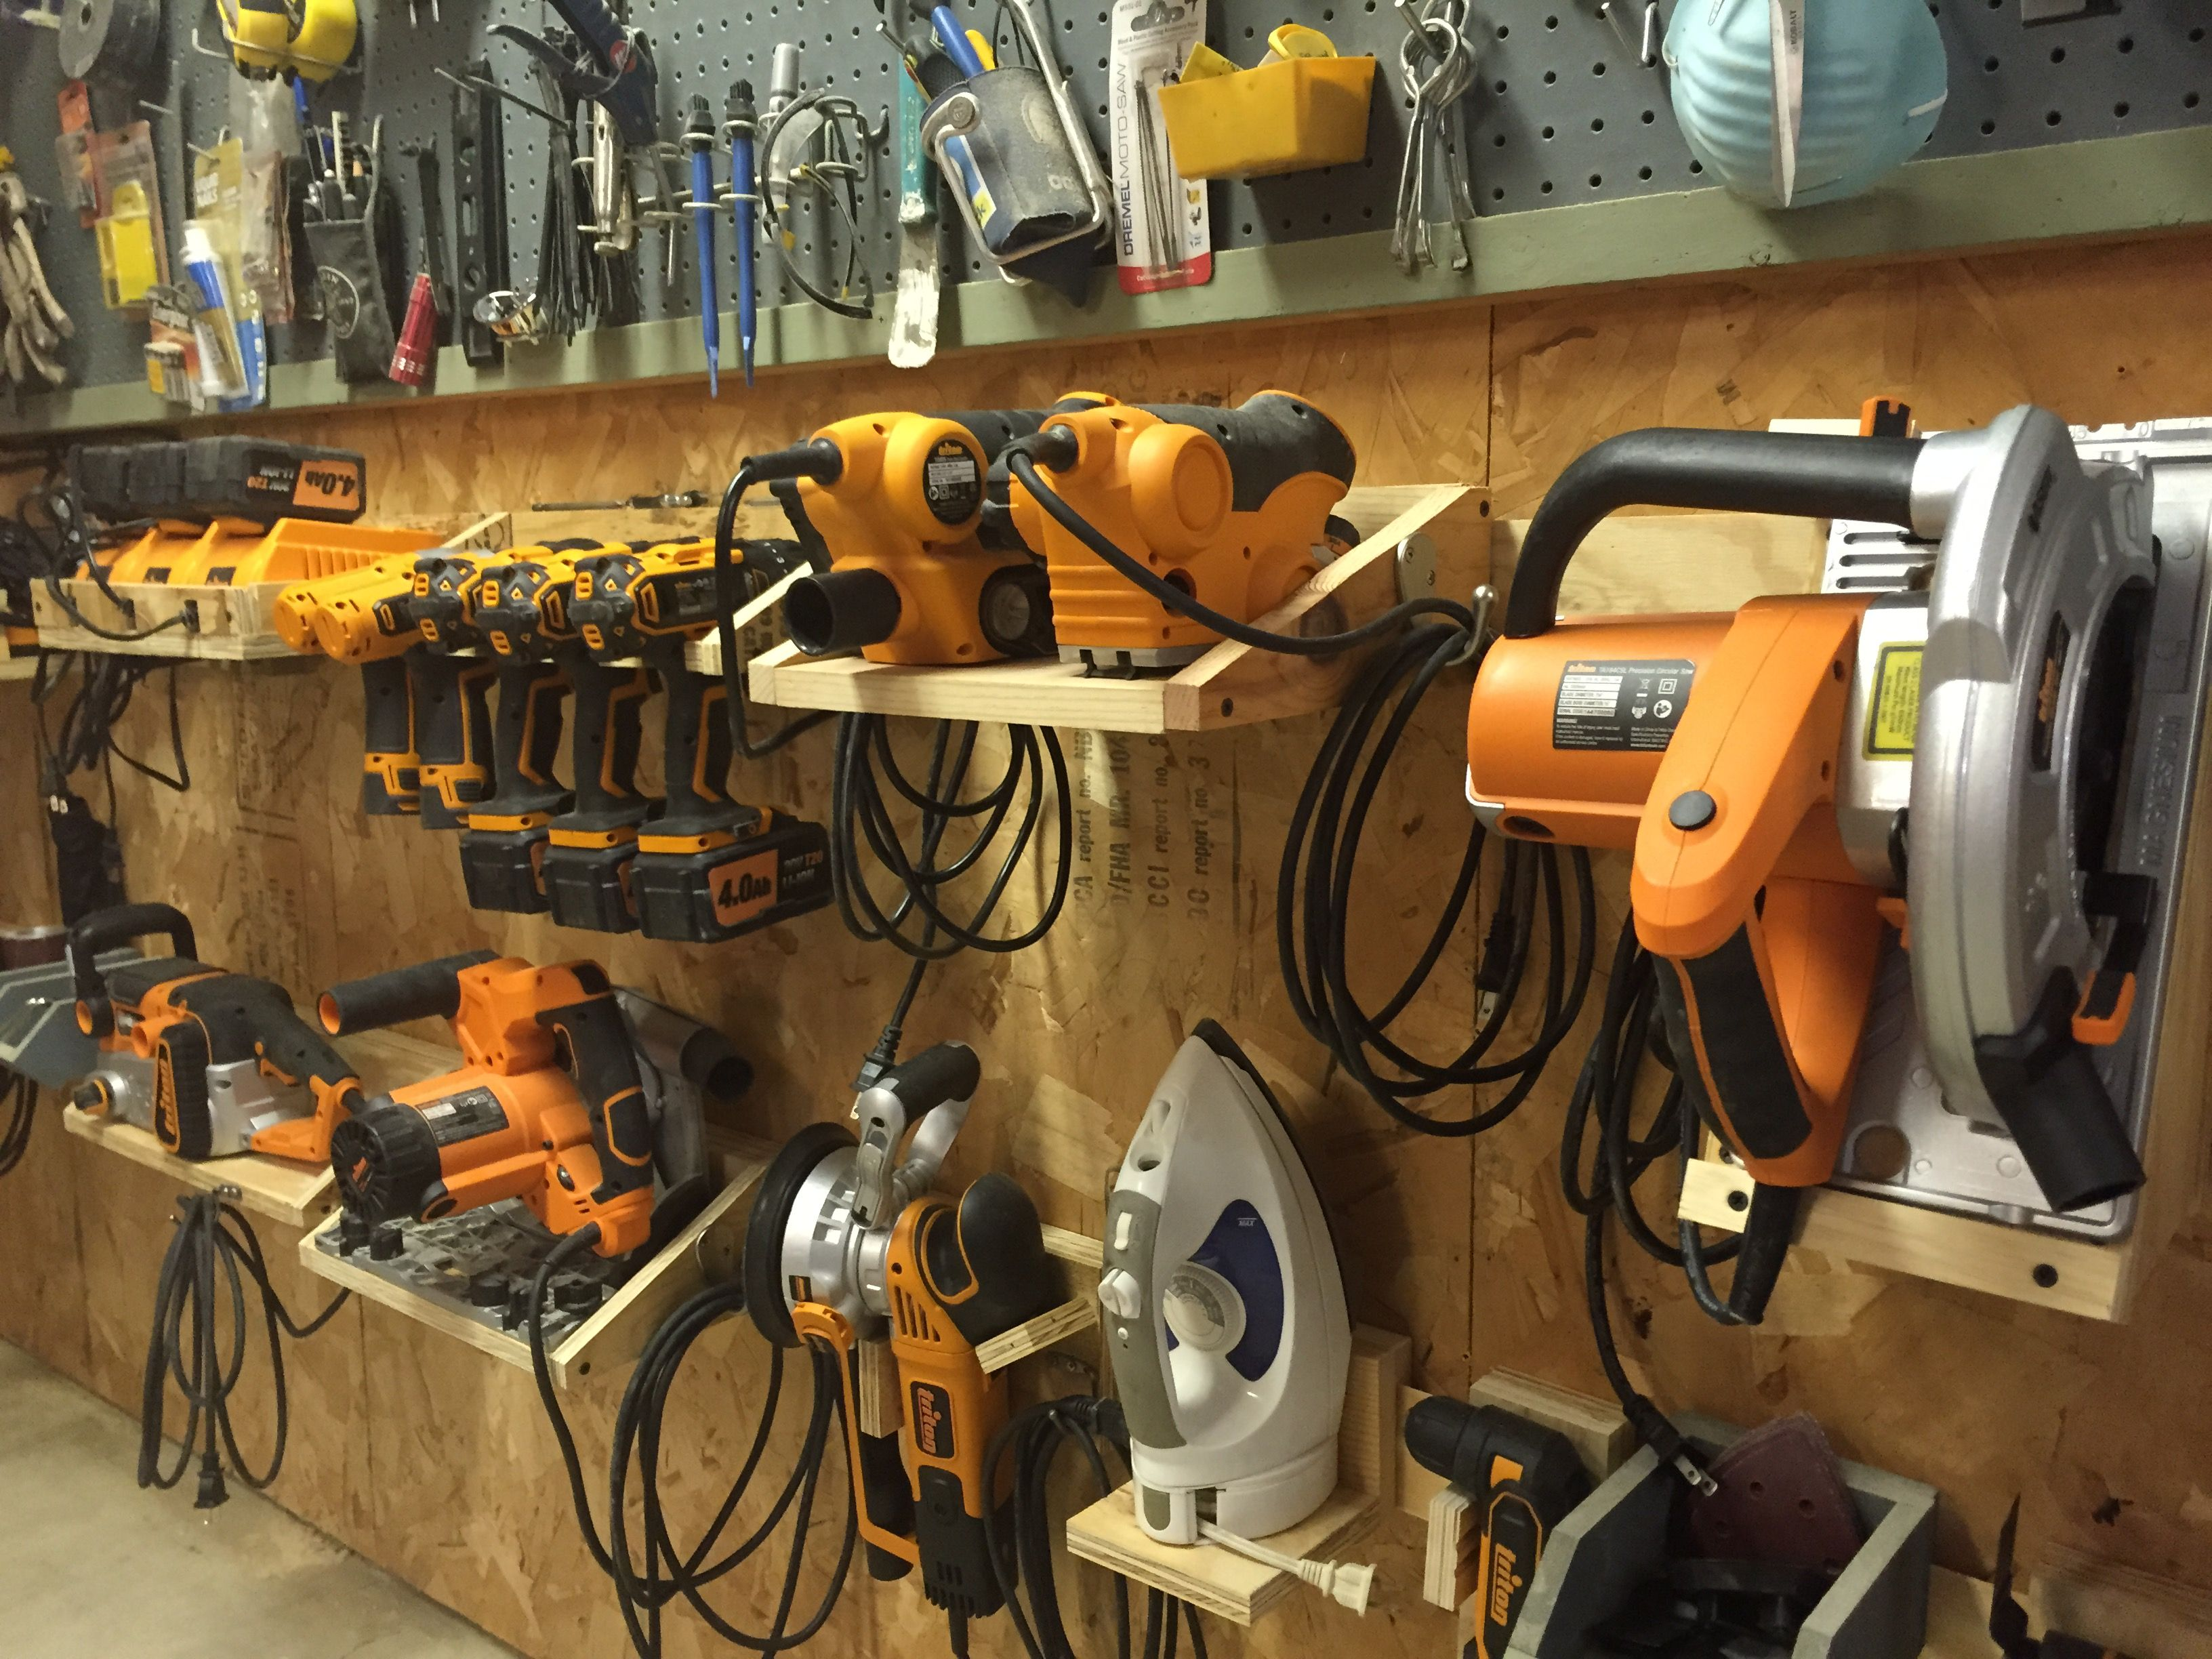 power tool french cleat system woodshop ideas pinte. Black Bedroom Furniture Sets. Home Design Ideas